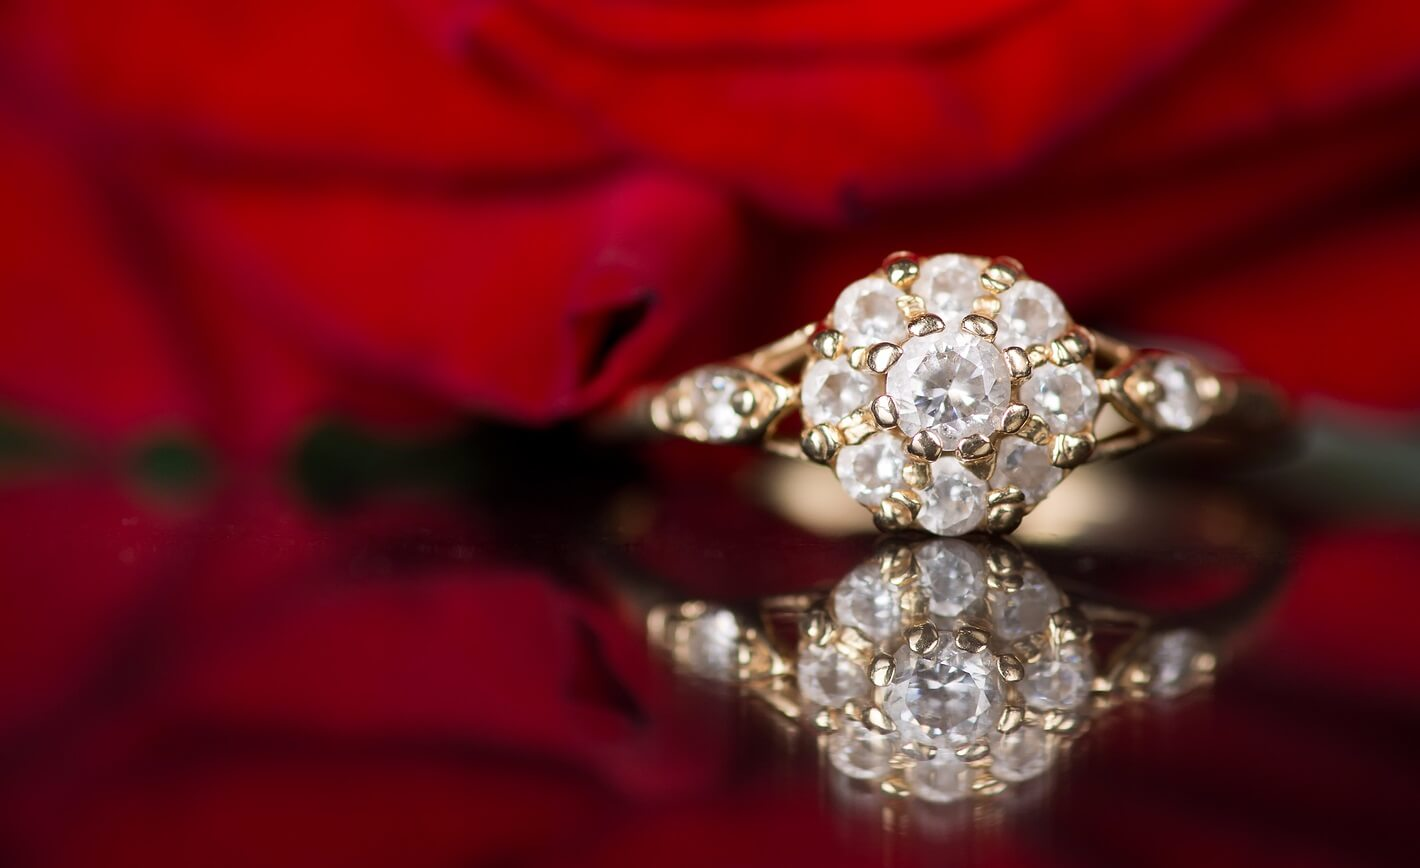 Who Gets Engagement Ring After Divorce